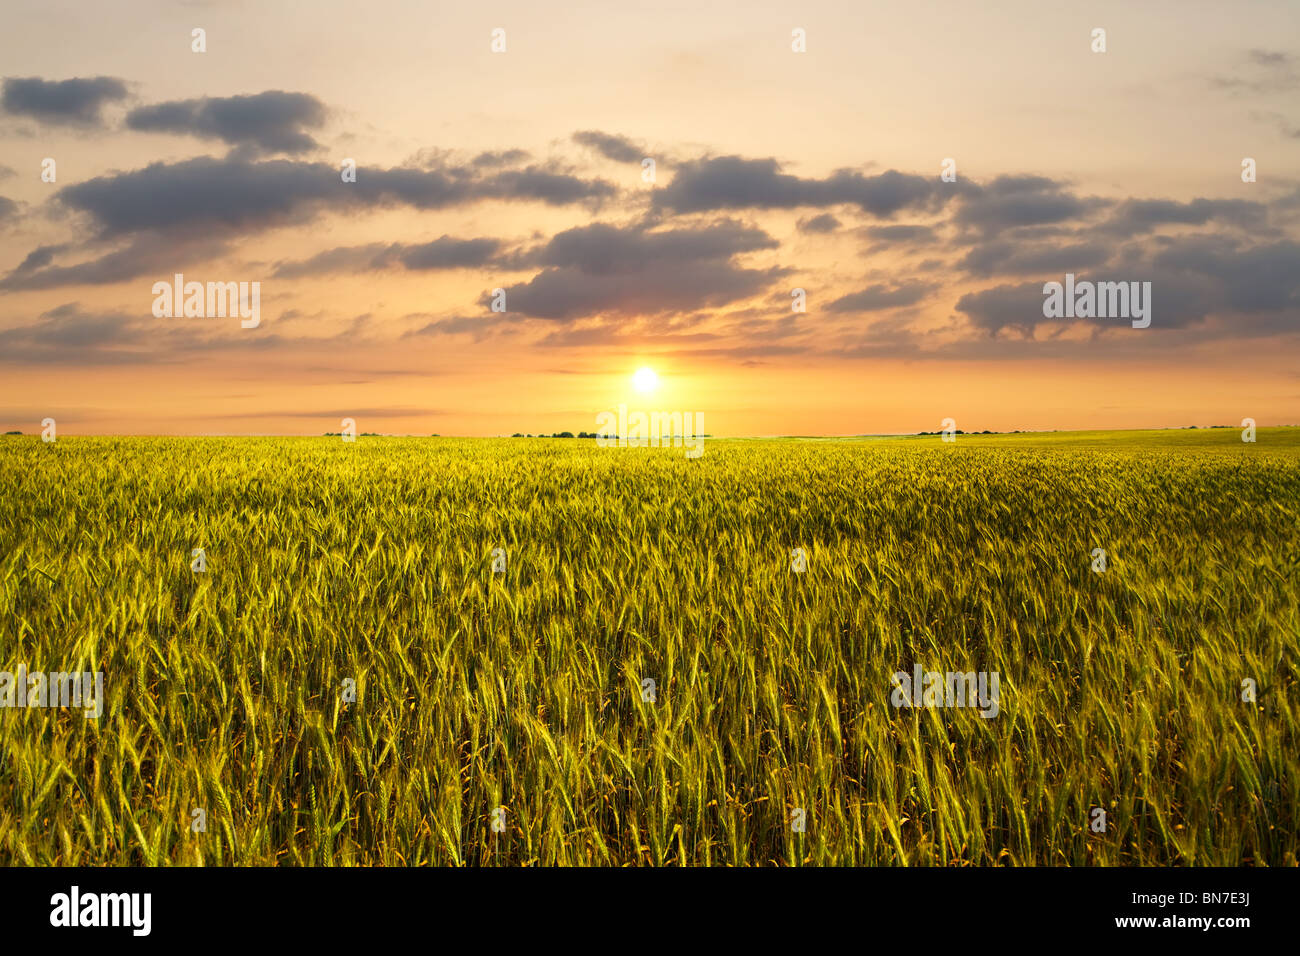 sunset on the wheat field - Stock Image